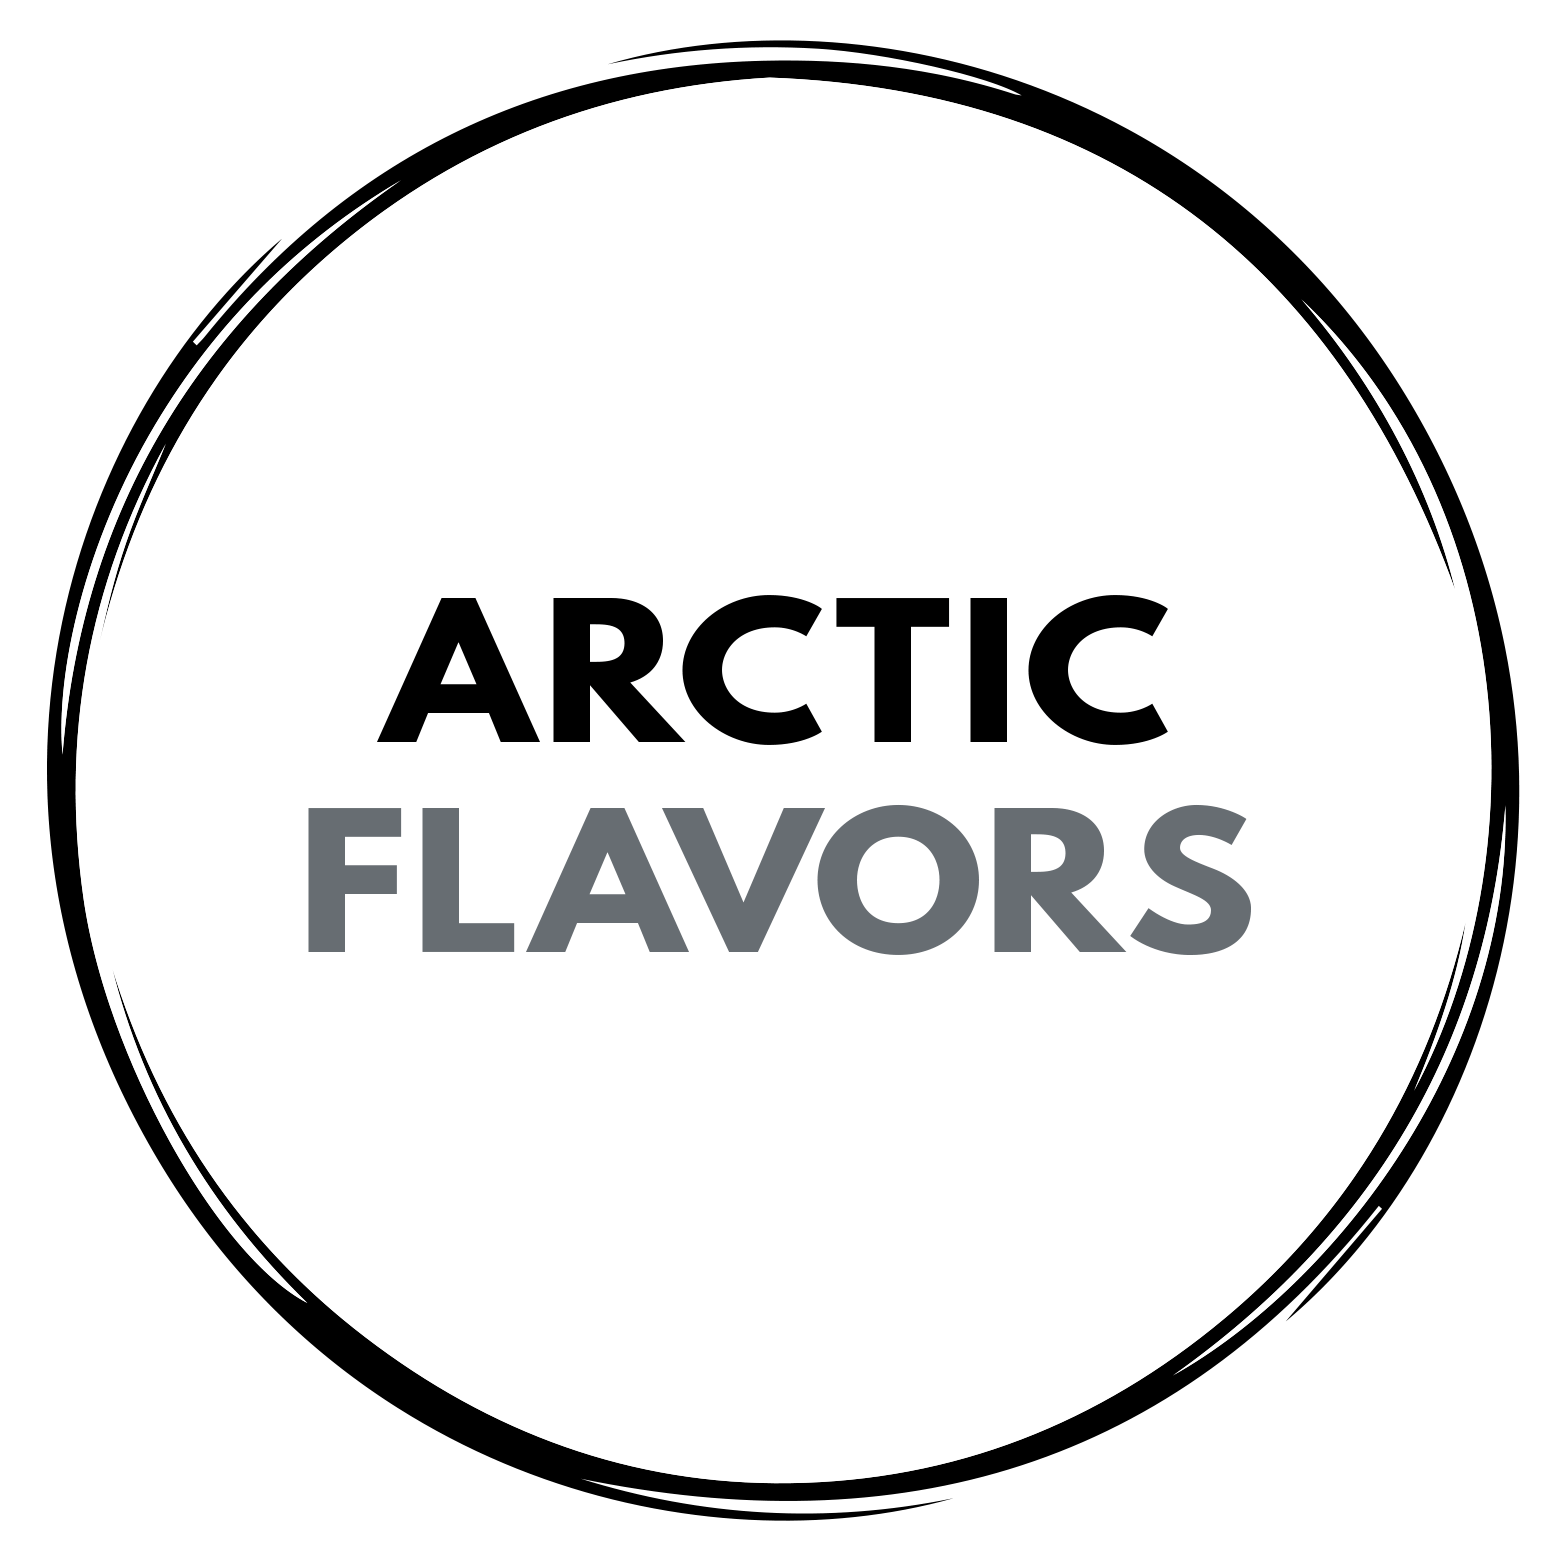 Arctic Flavors – Wild berry powder superfoods from Finland